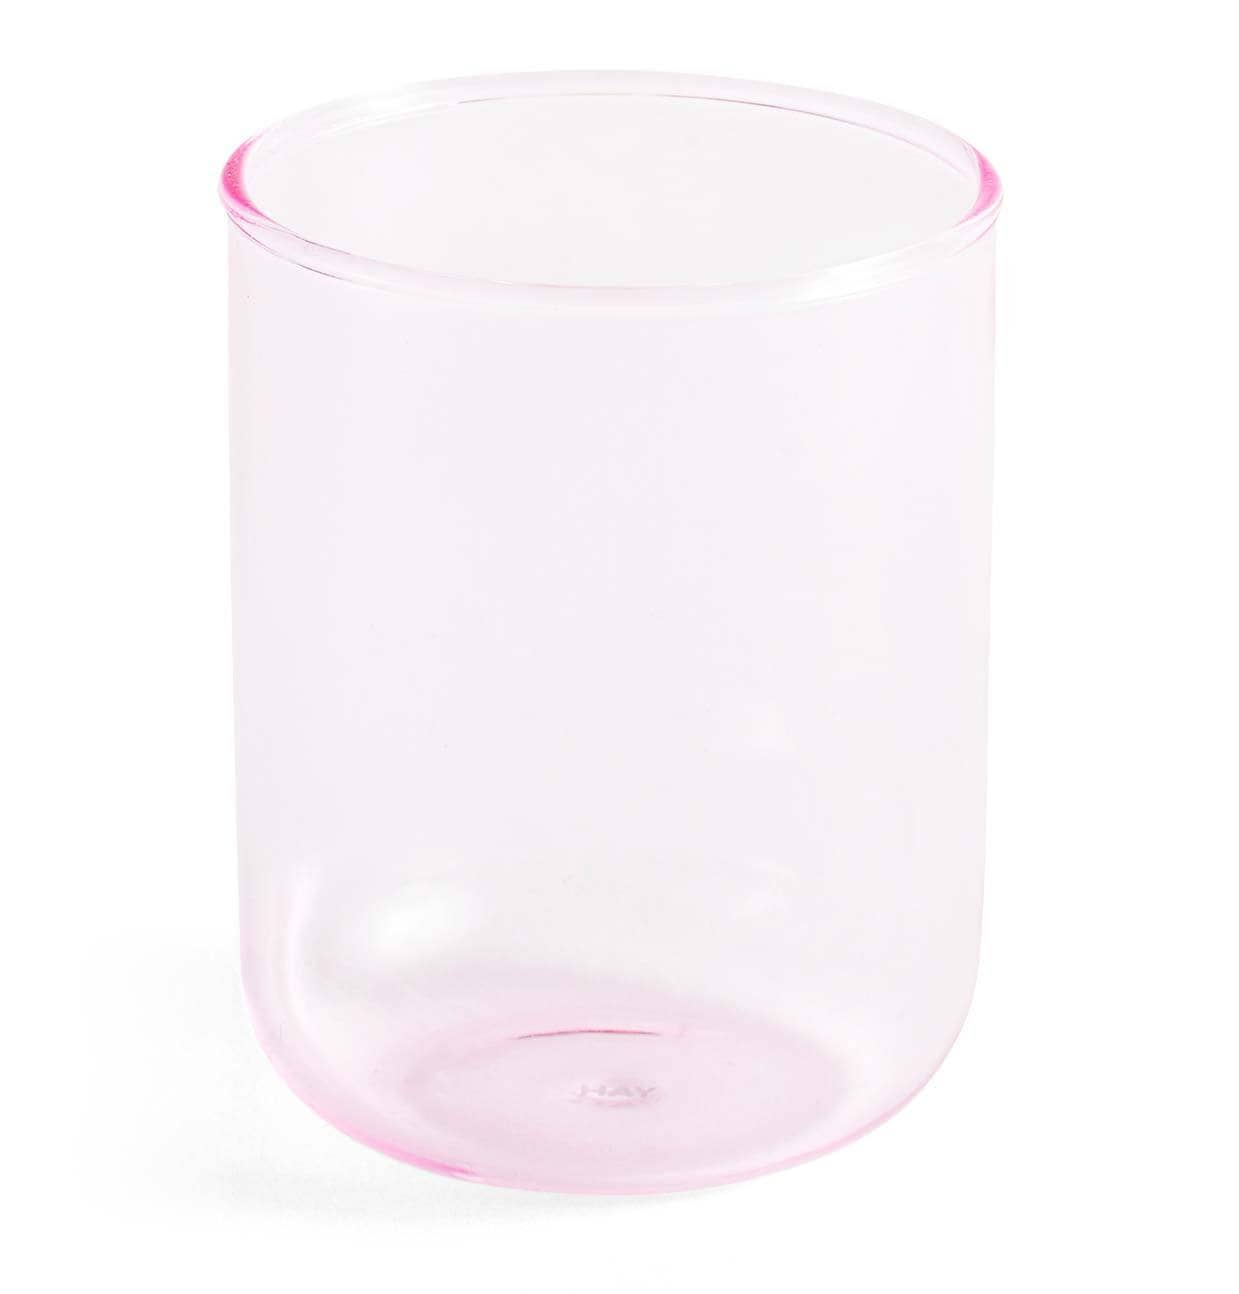 HAY Tint Tumbler – Pink – 300ml – Set of 2